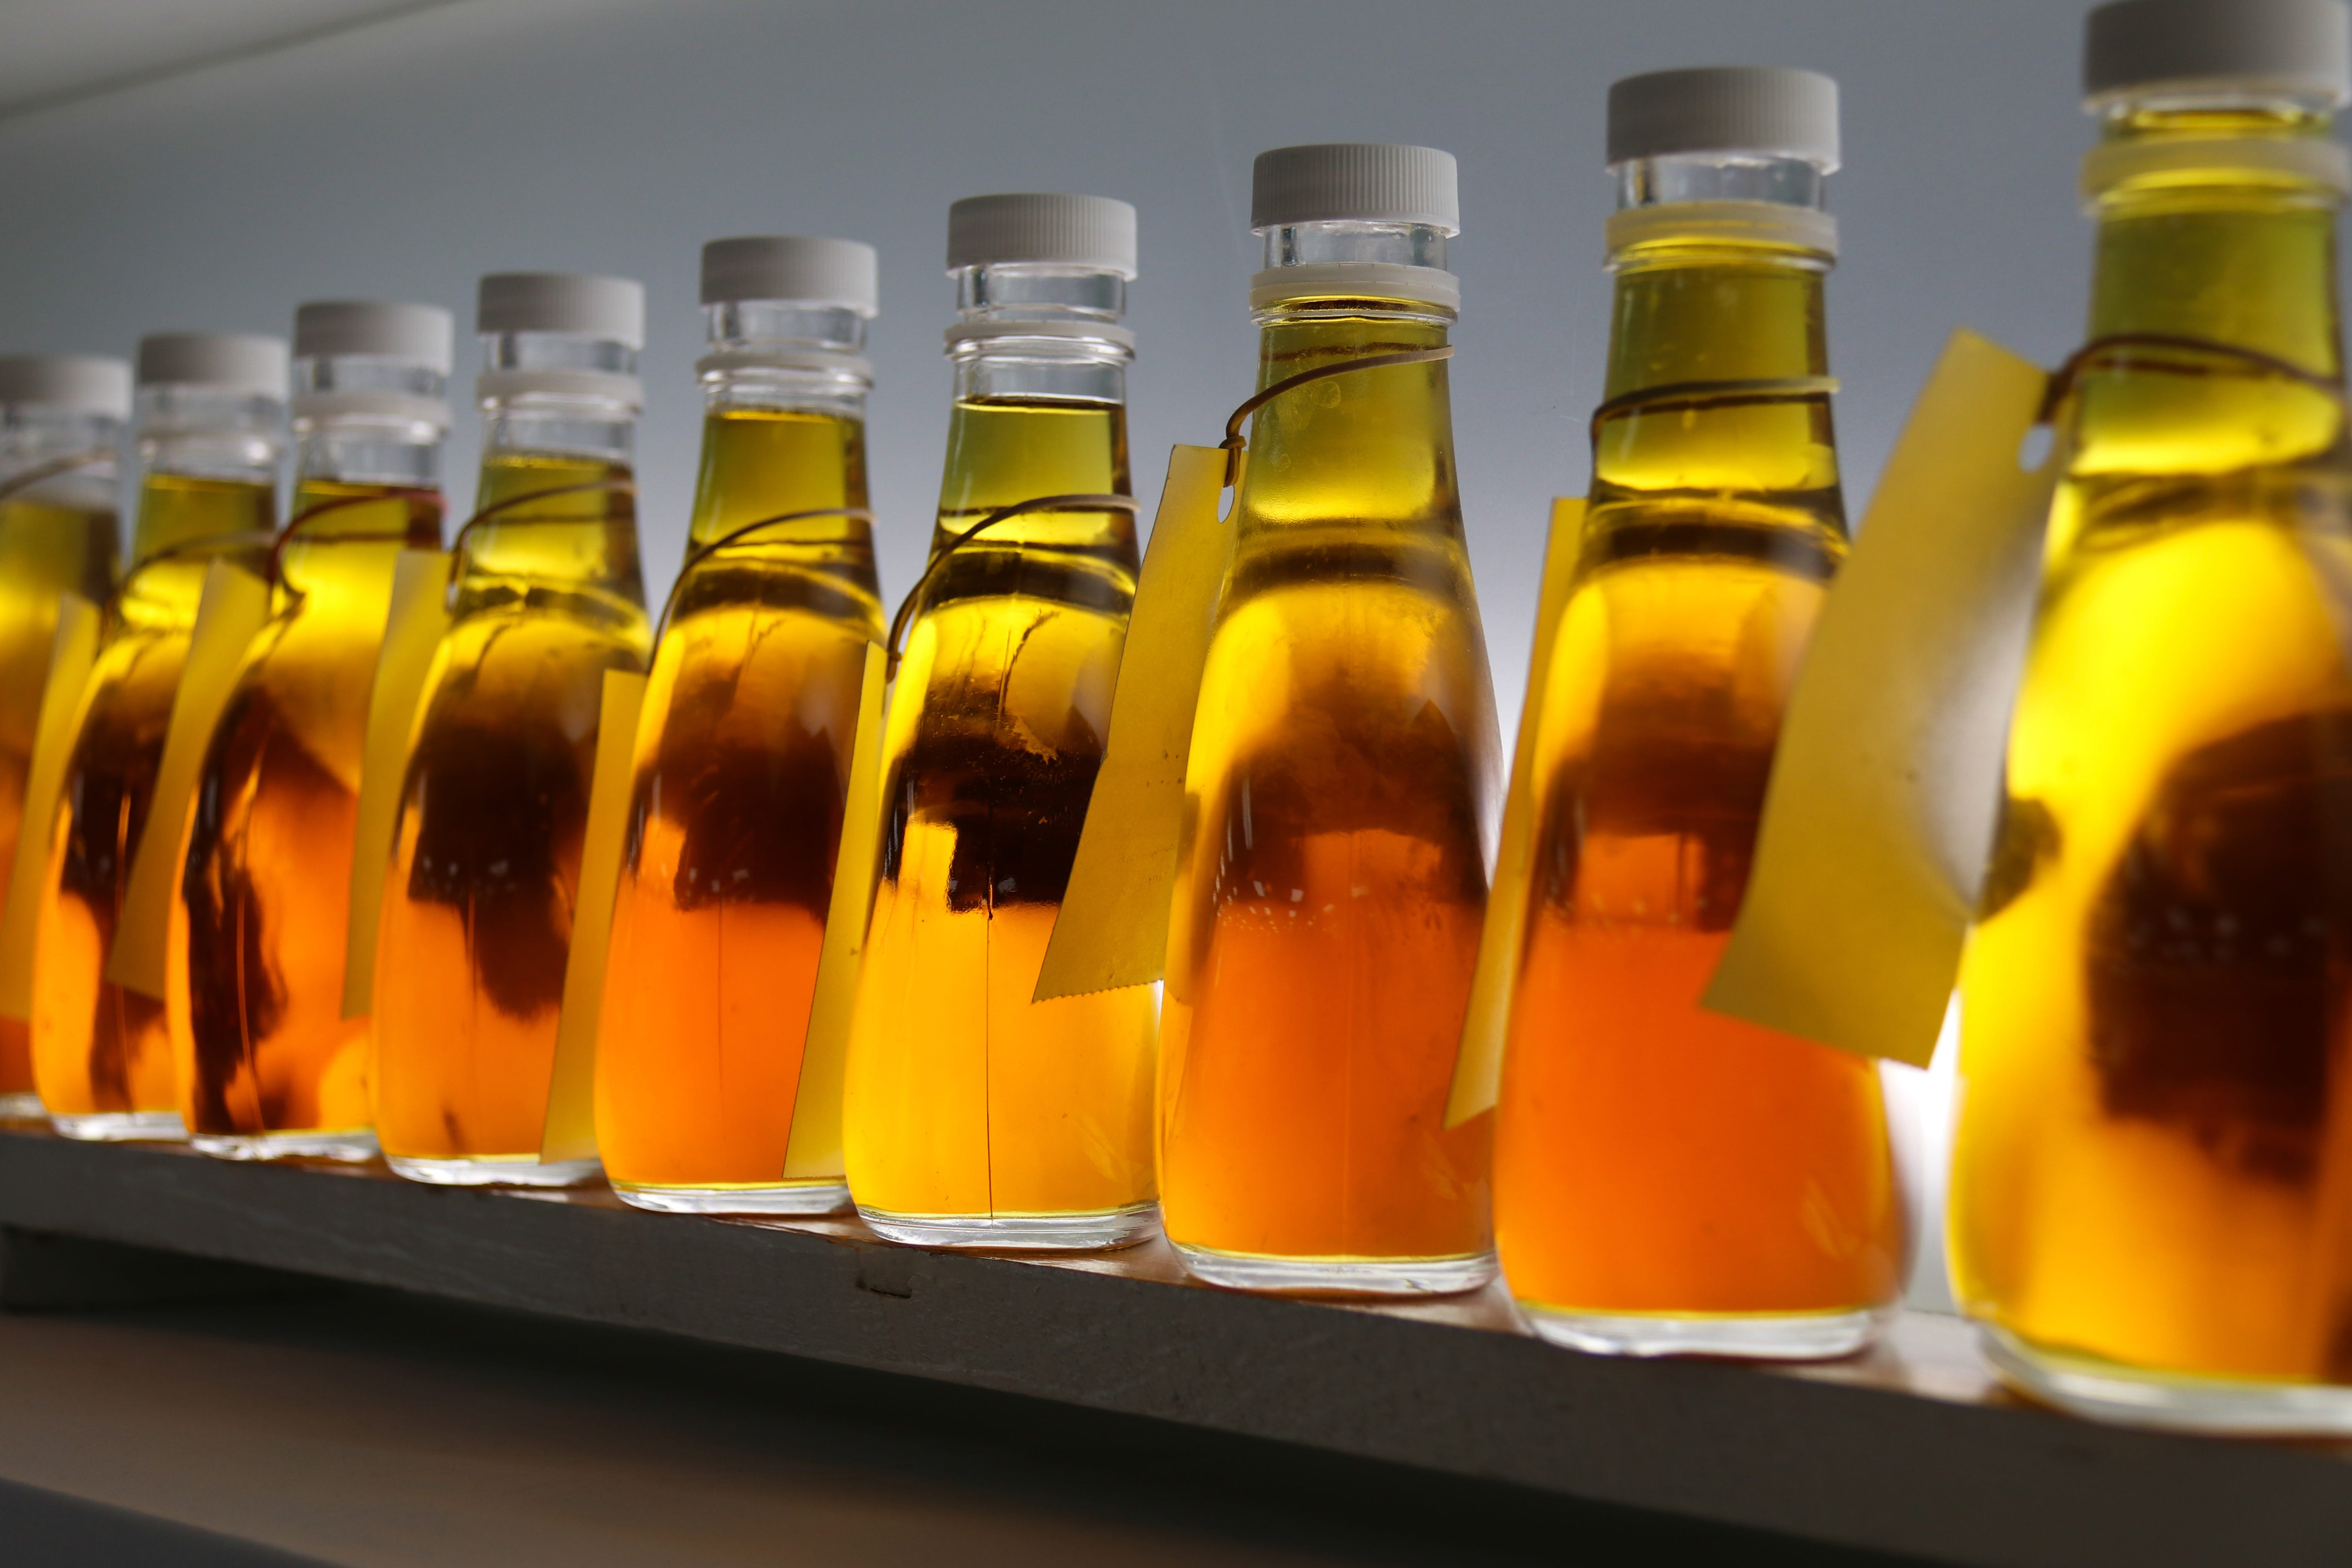 Maple Syrup: After Vermonters fight back, FDA will reconsider 'sugar added' label mandate | Burlington Free Press